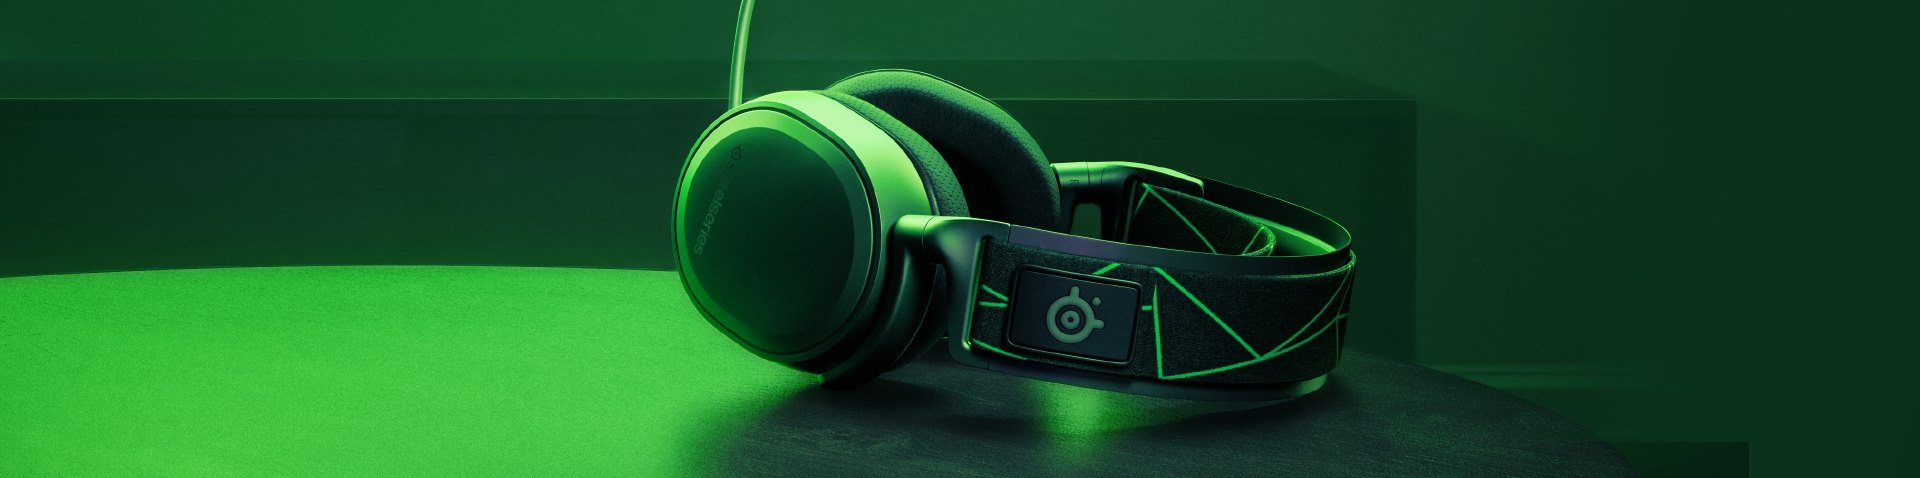 Image of an Arctis 7X headset optimized for Xbox